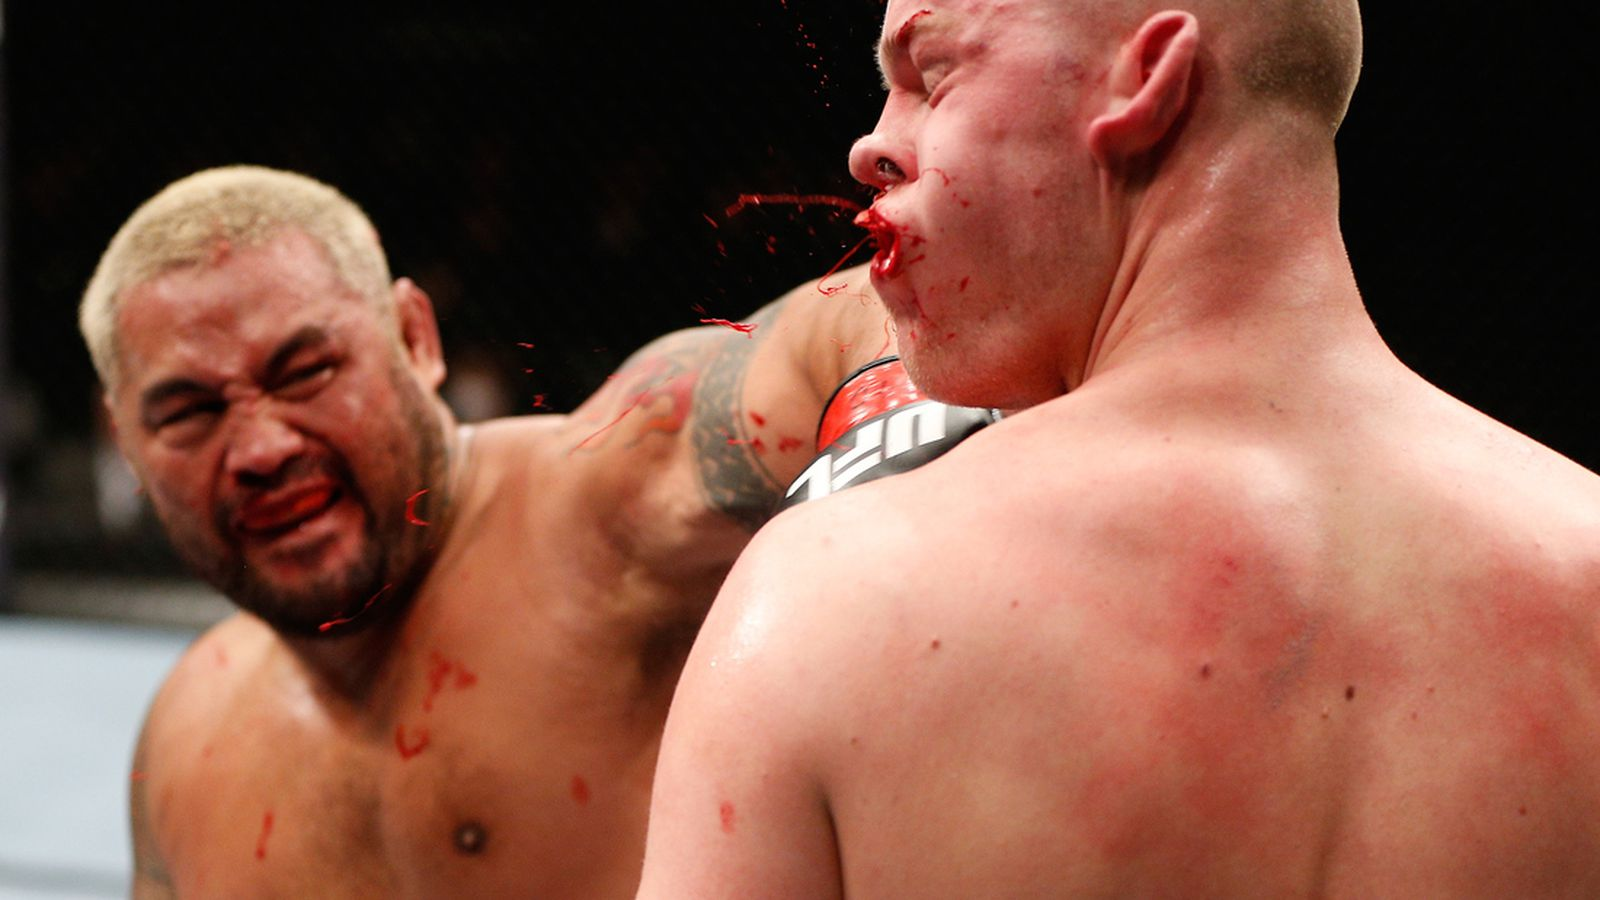 Judo Chop: The Best and Worst of Mark Hunt